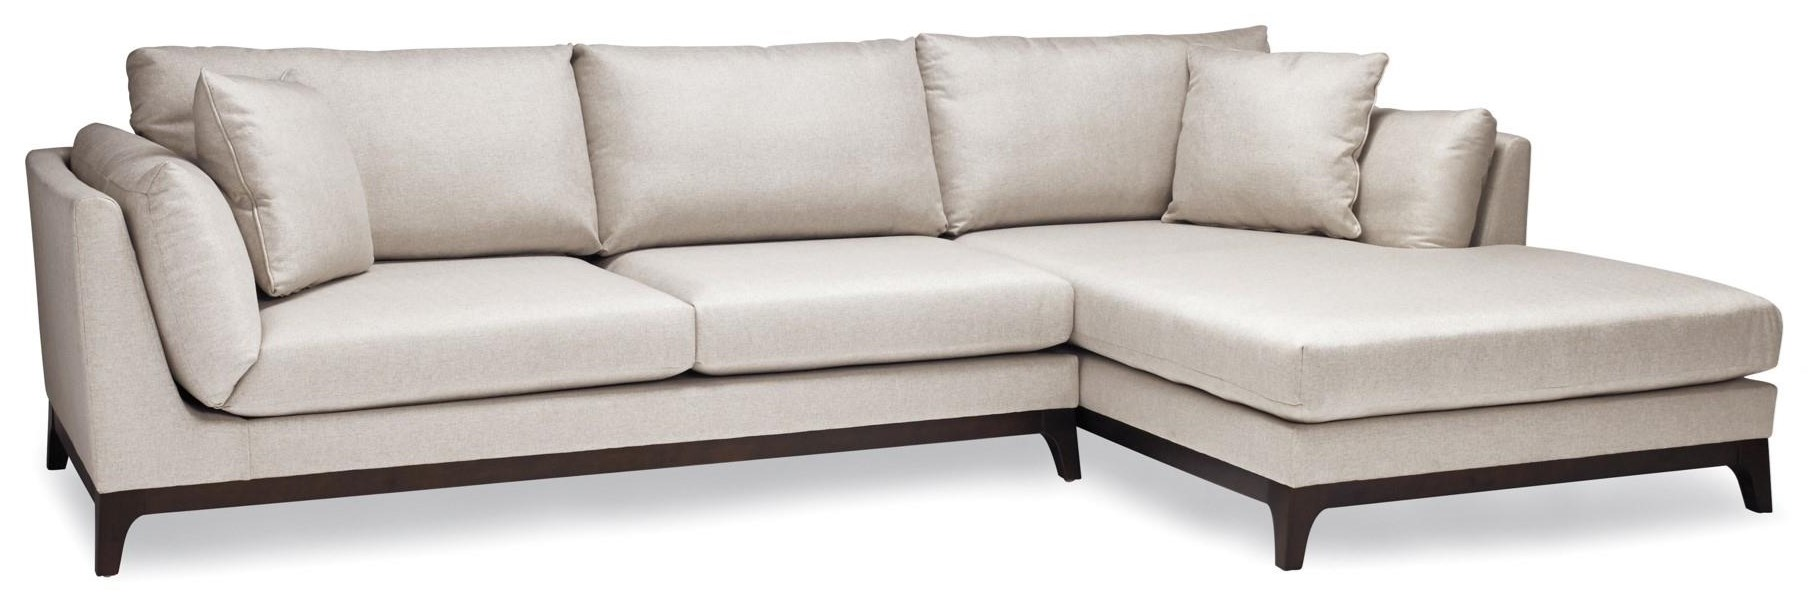 7256 2 Pc Sectional in candid Fleece by Lewis Home at Stoney Creek Furniture